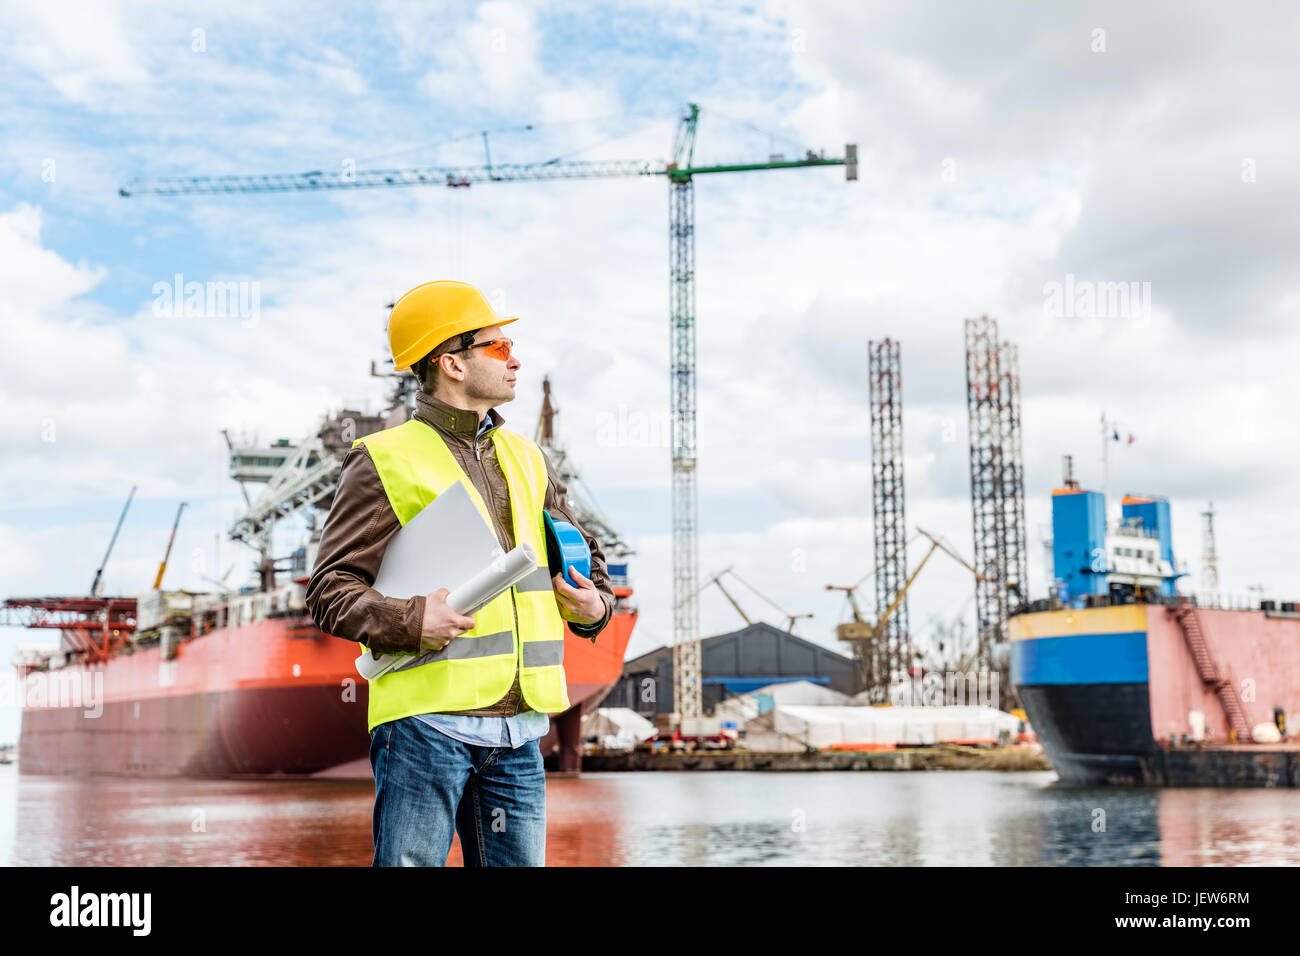 Shipbuilding engineer stands at the dockside in a port. Wearing safety helmet, yellow vest and safety glasses. Shipbuilding - Stock Image